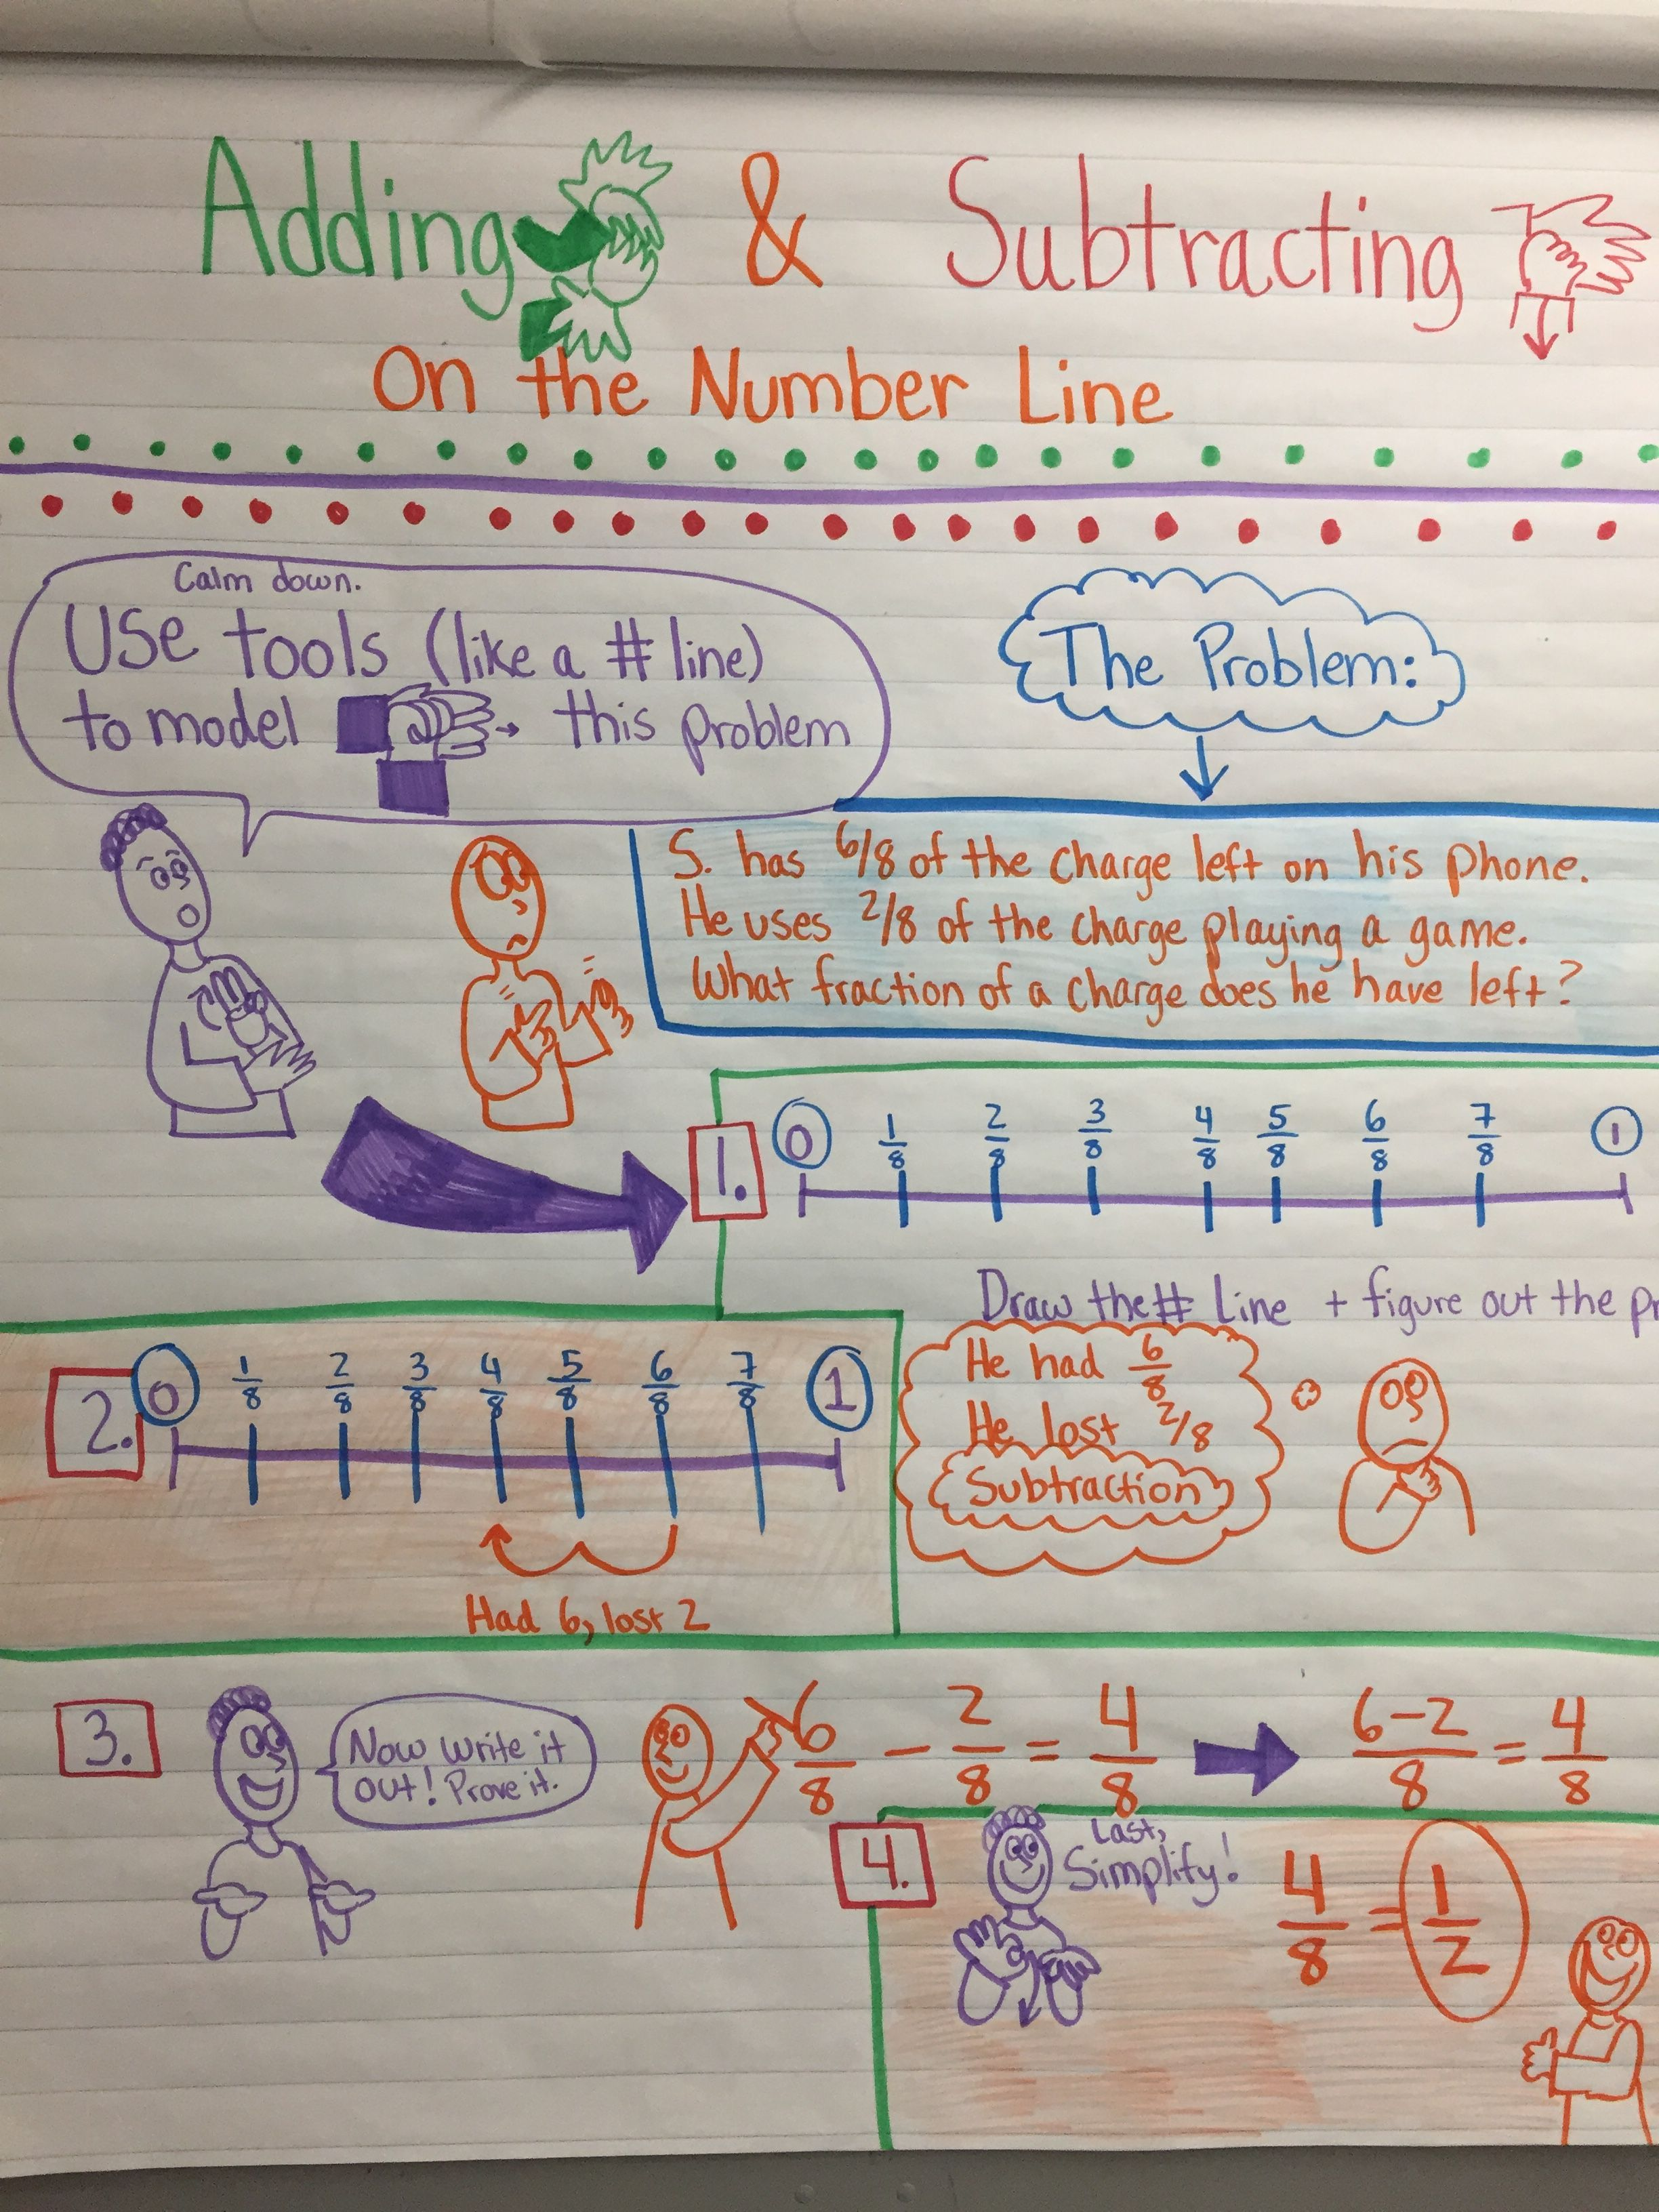 Adding And Subtracting Fractions On The Number Line For 4th Grade Deaf Ed With Asl Subtracting Fractions Adding And Subtracting Fractions Number Line Addition and subtraction on number line